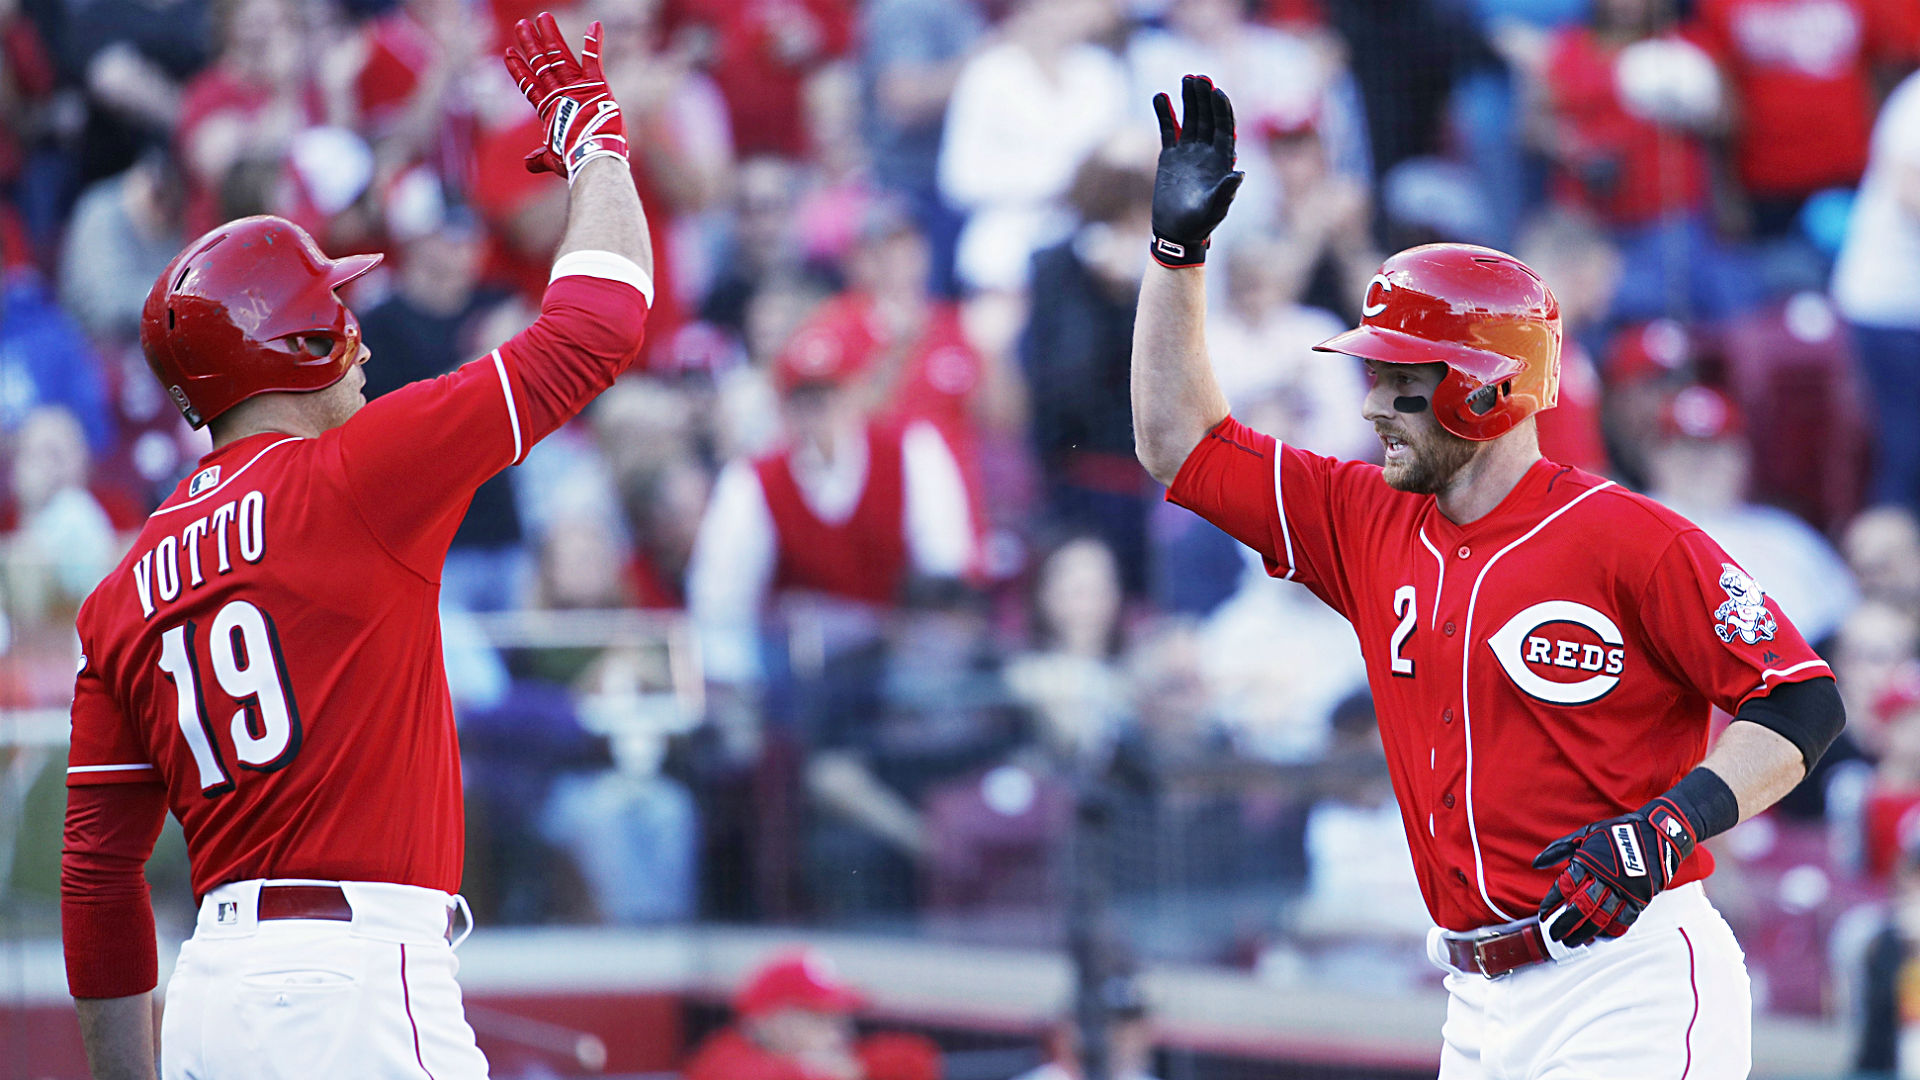 Ole Miss product Zack Cozart selected for 1st MLB All-Star Game